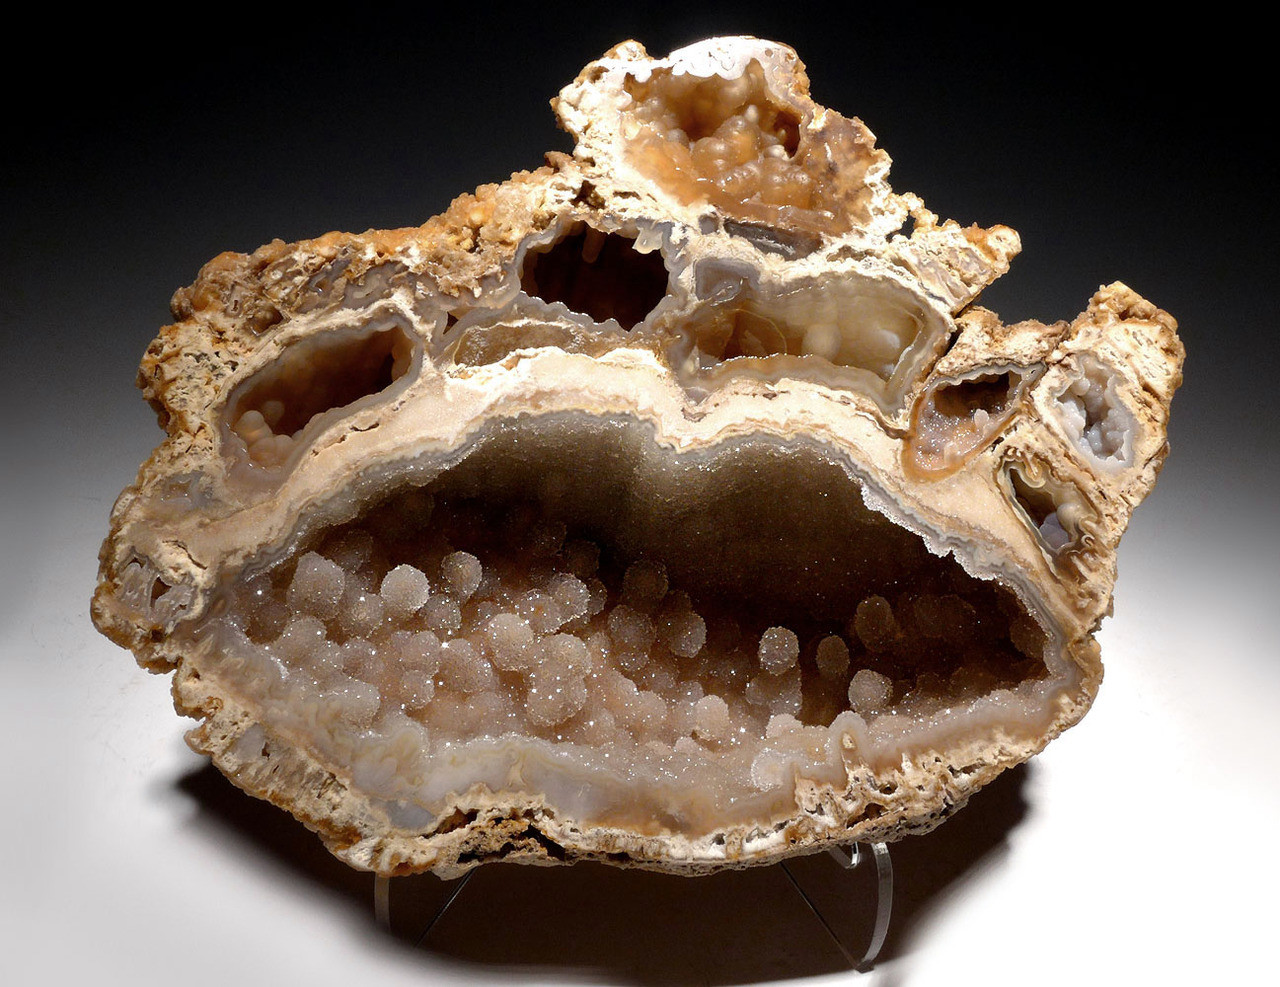 "PCOR003 - ULTRA-RARE LARGE ""DIAMOND CAVE"" FOSSIL AGATIZED CORAL COLONY GEODE - BEST OF A HUGE COLLECTION"